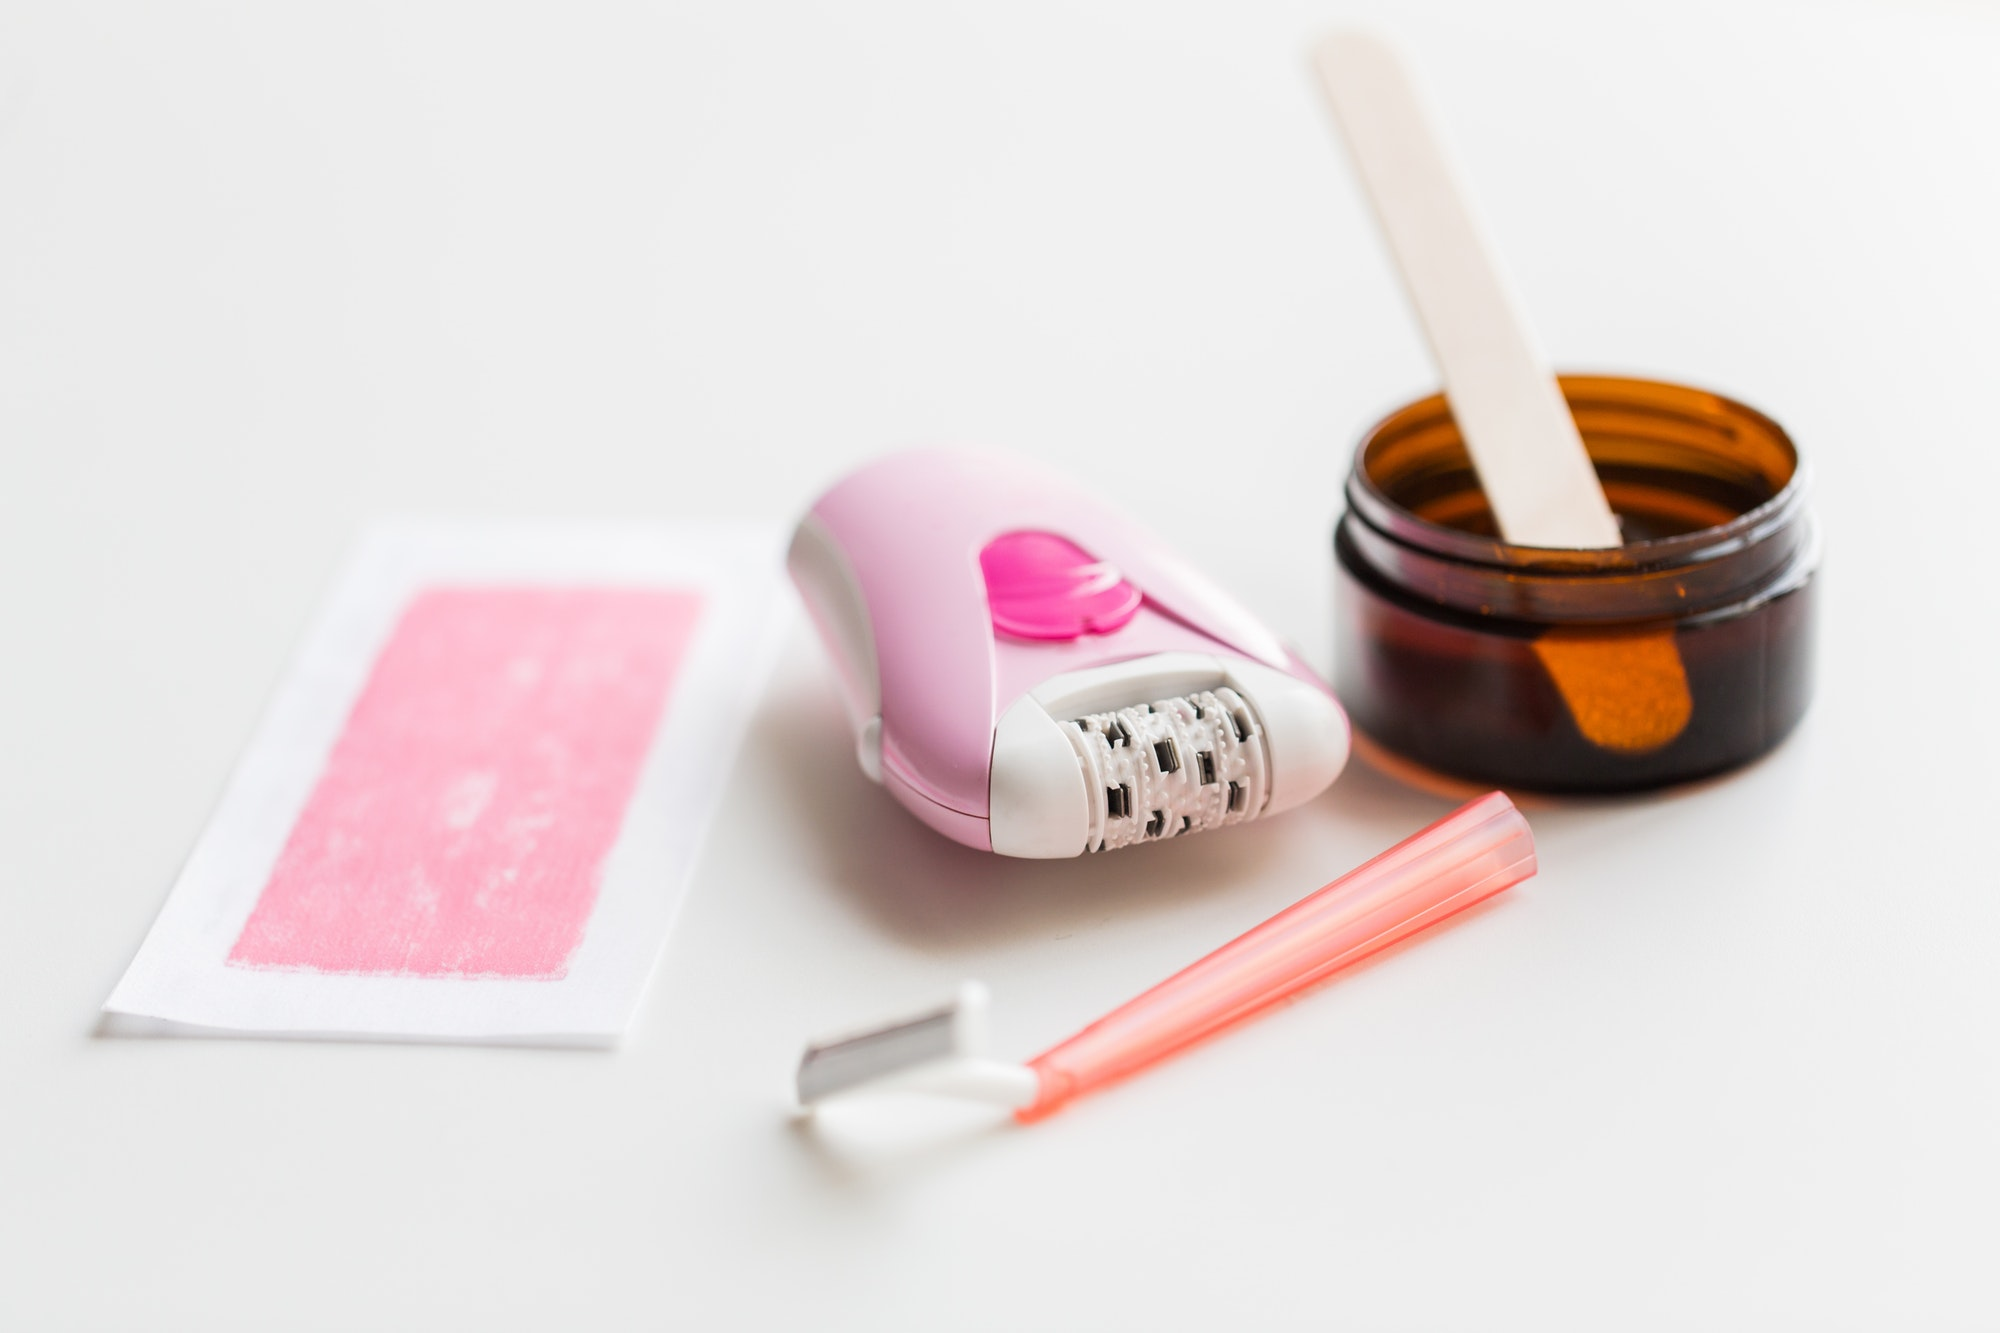 safety razor, epilator, hair removal wax and patch